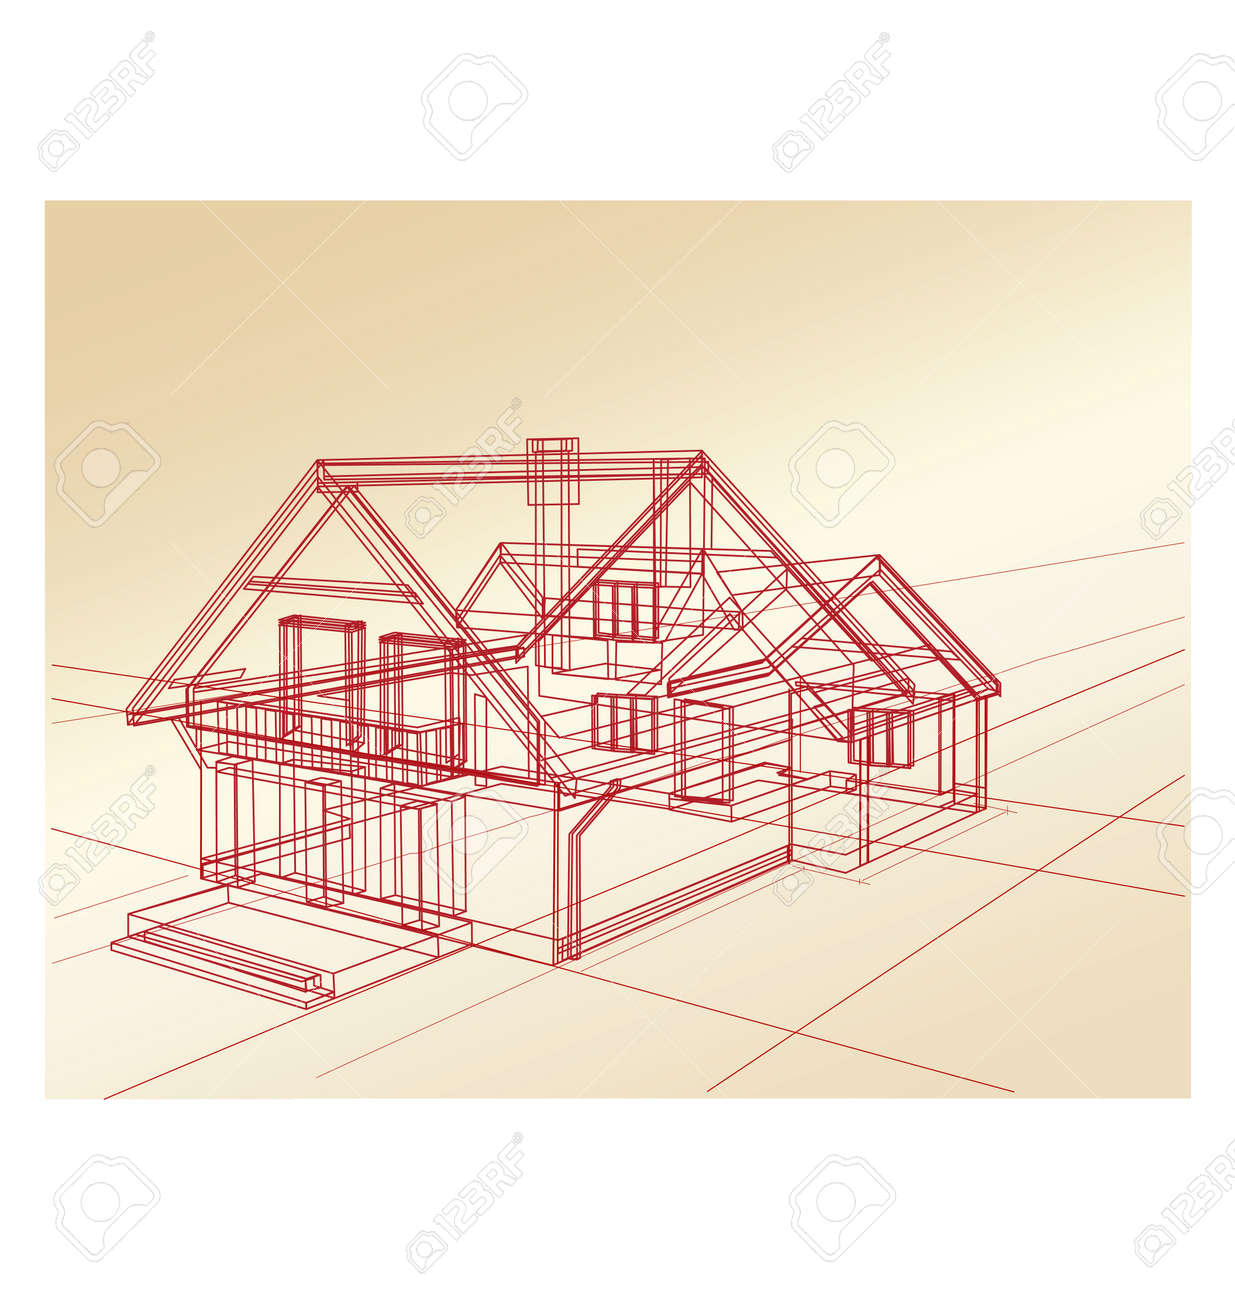 plan a country house on a pink background royalty free cliparts